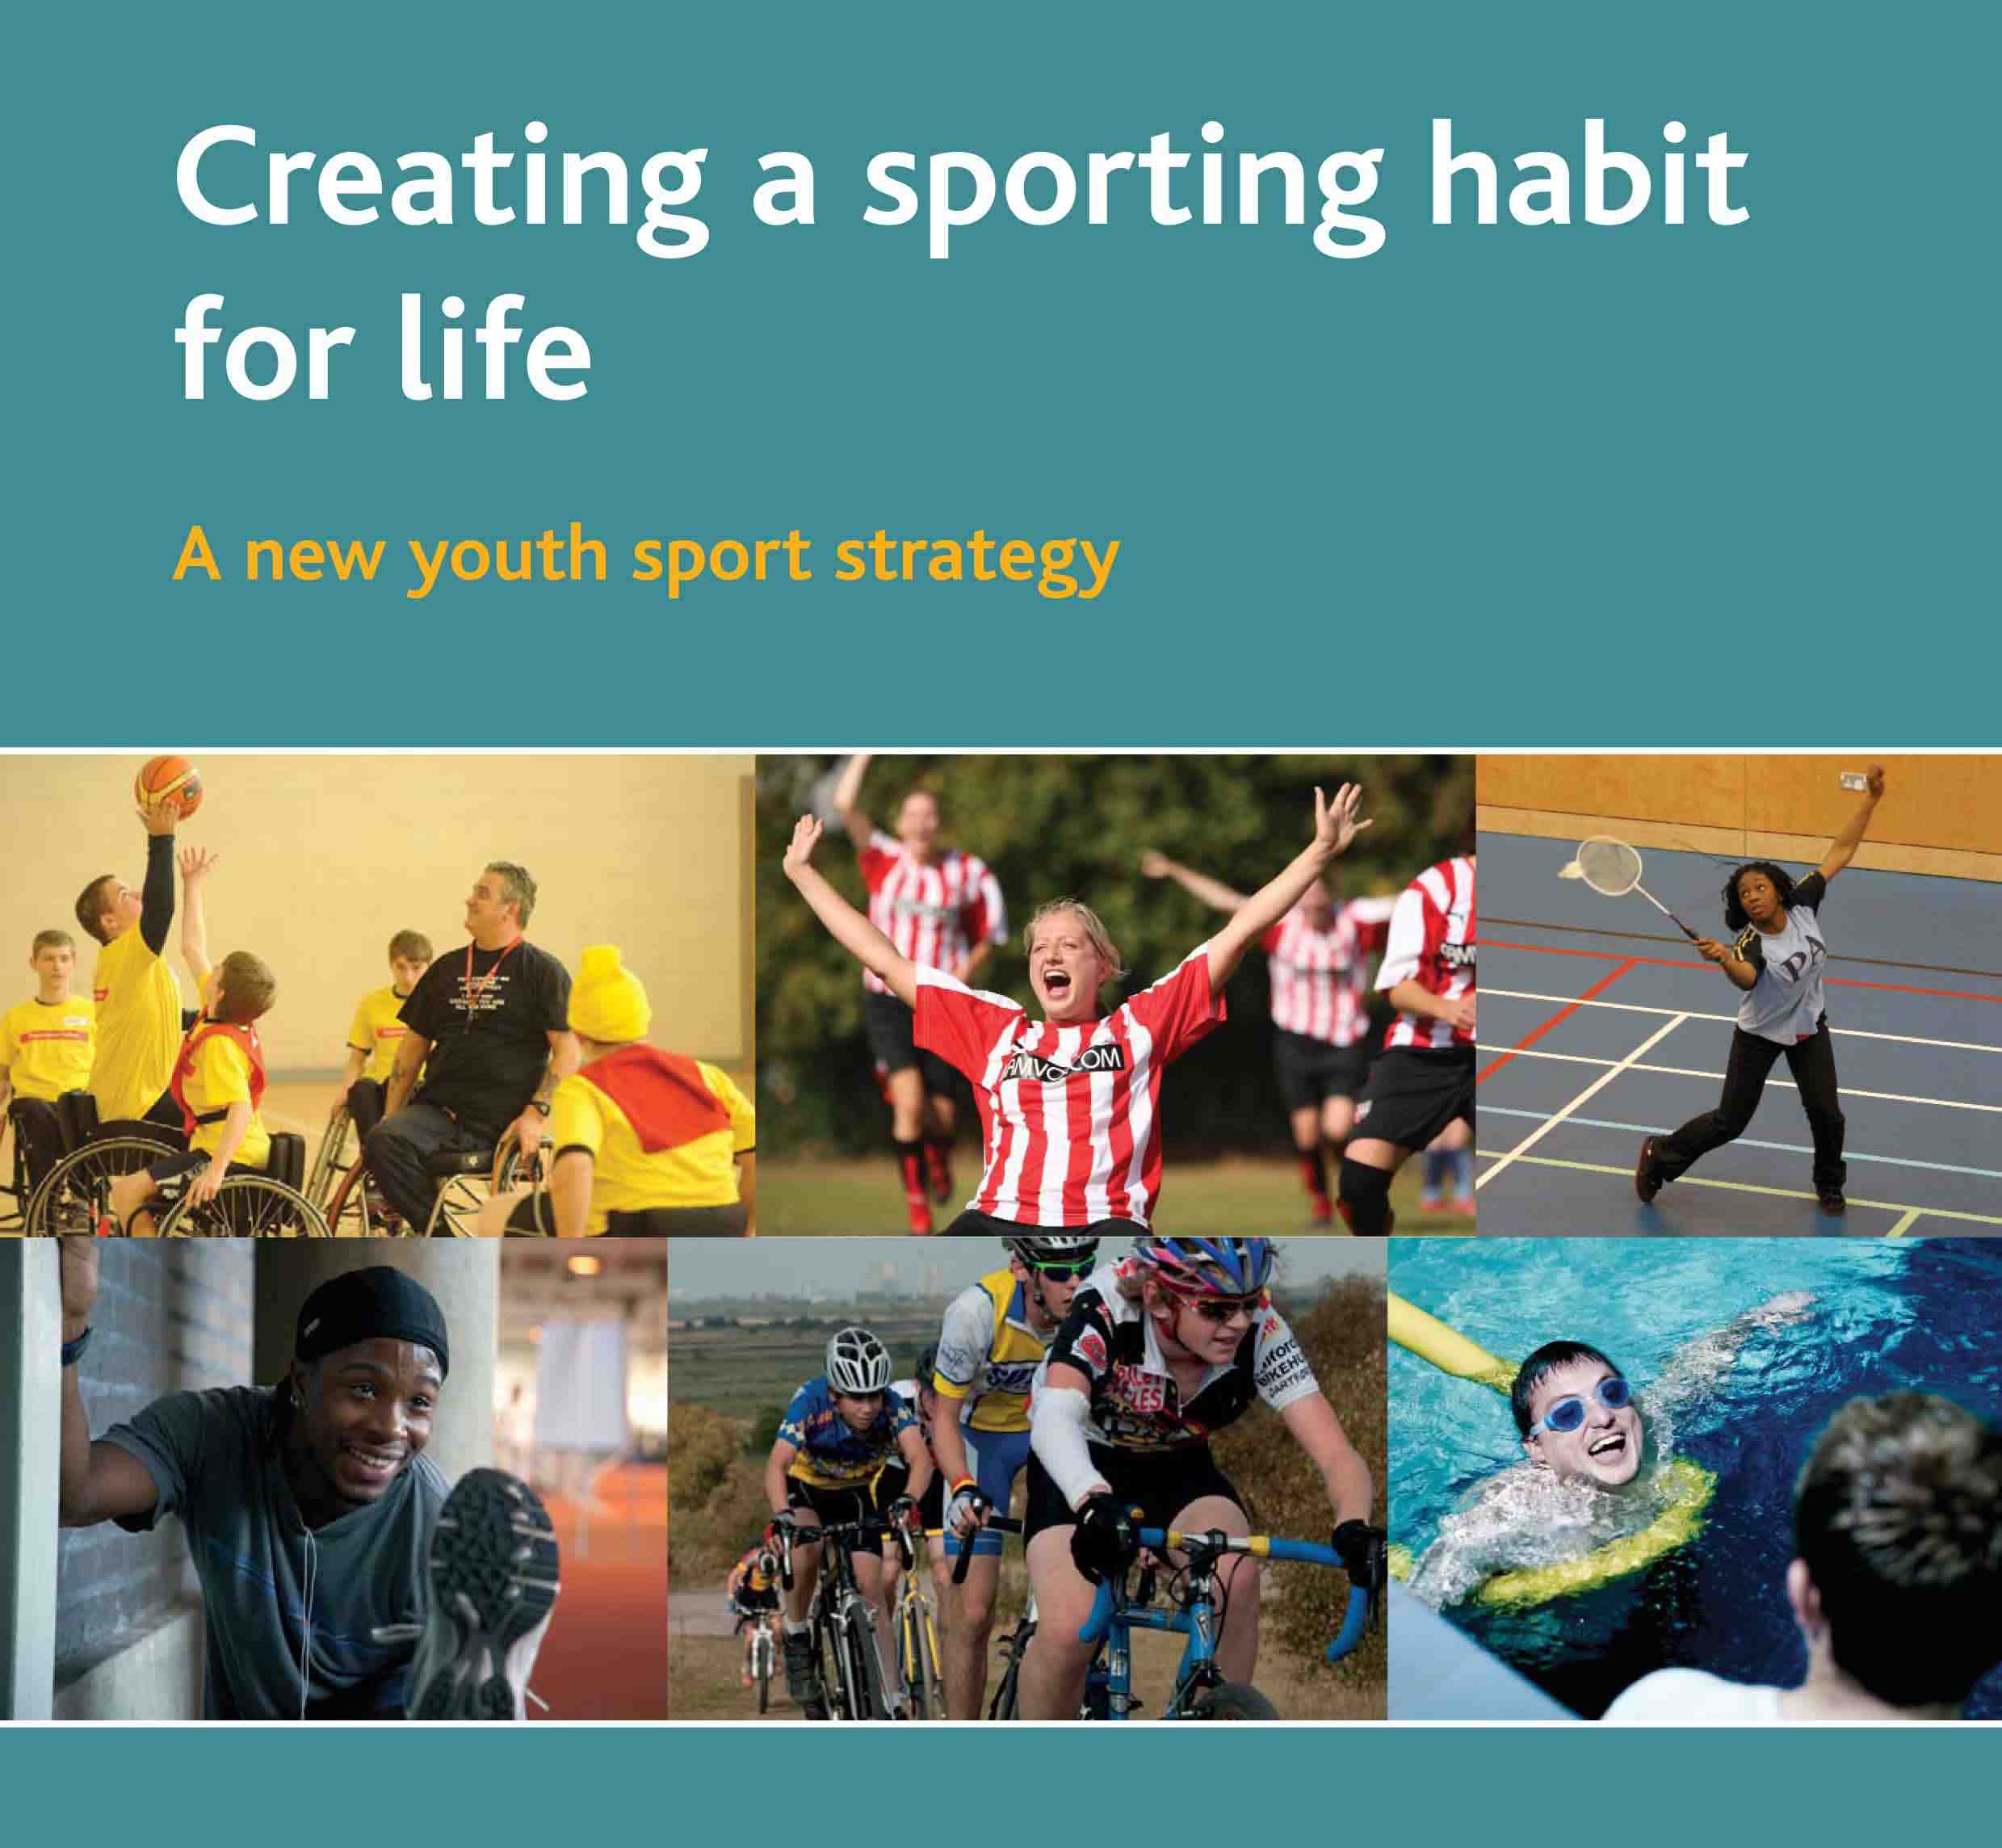 creating a_sporting_habit_for_life-1